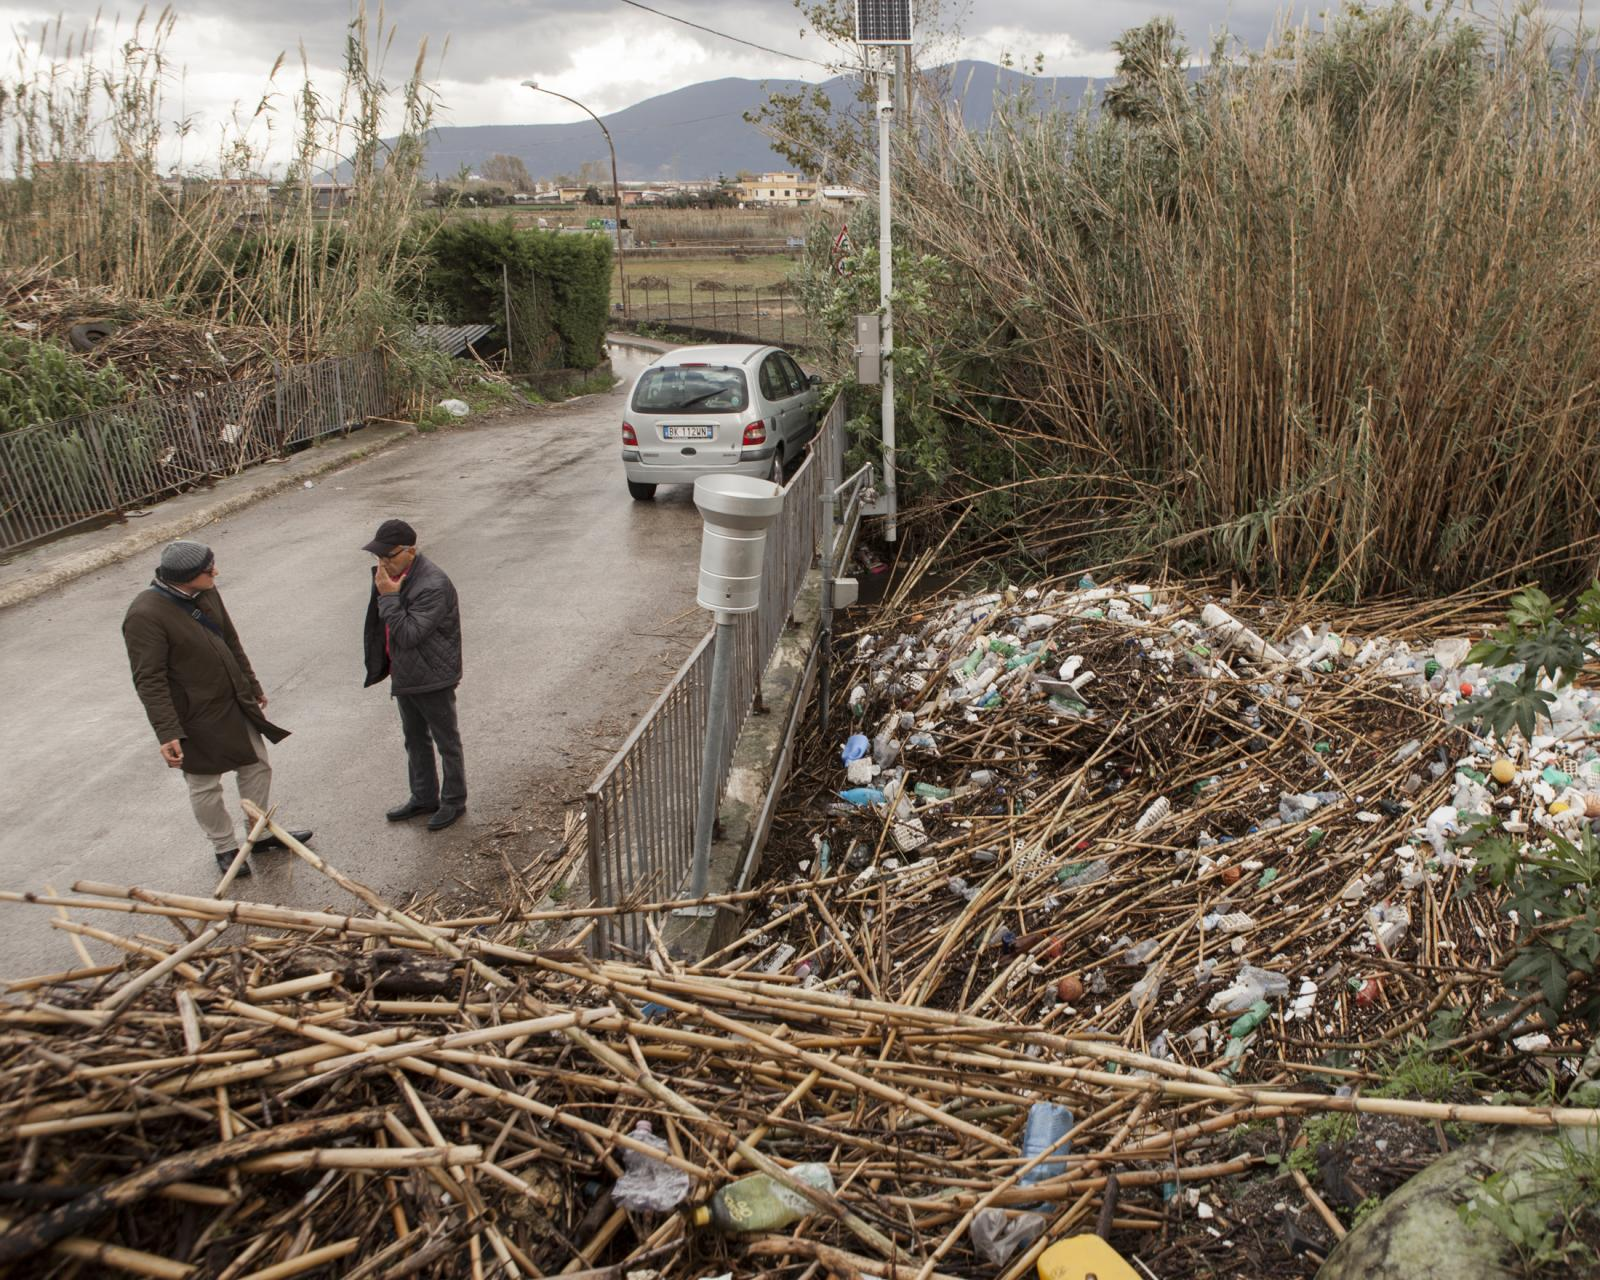 San Marzano Sul Sarno, Salerno, November 2018. Two men talk in front of the large block of solid waste brought from the canal. These rubbish, blocking along the course of the river, have raised the water level with consequent overflows during rainy or flooding days. The flooding often also involved the numerous cultivations present in the Sarno valley, leading to the contamination of vegetables with chemicals and waste spilled further upstream.